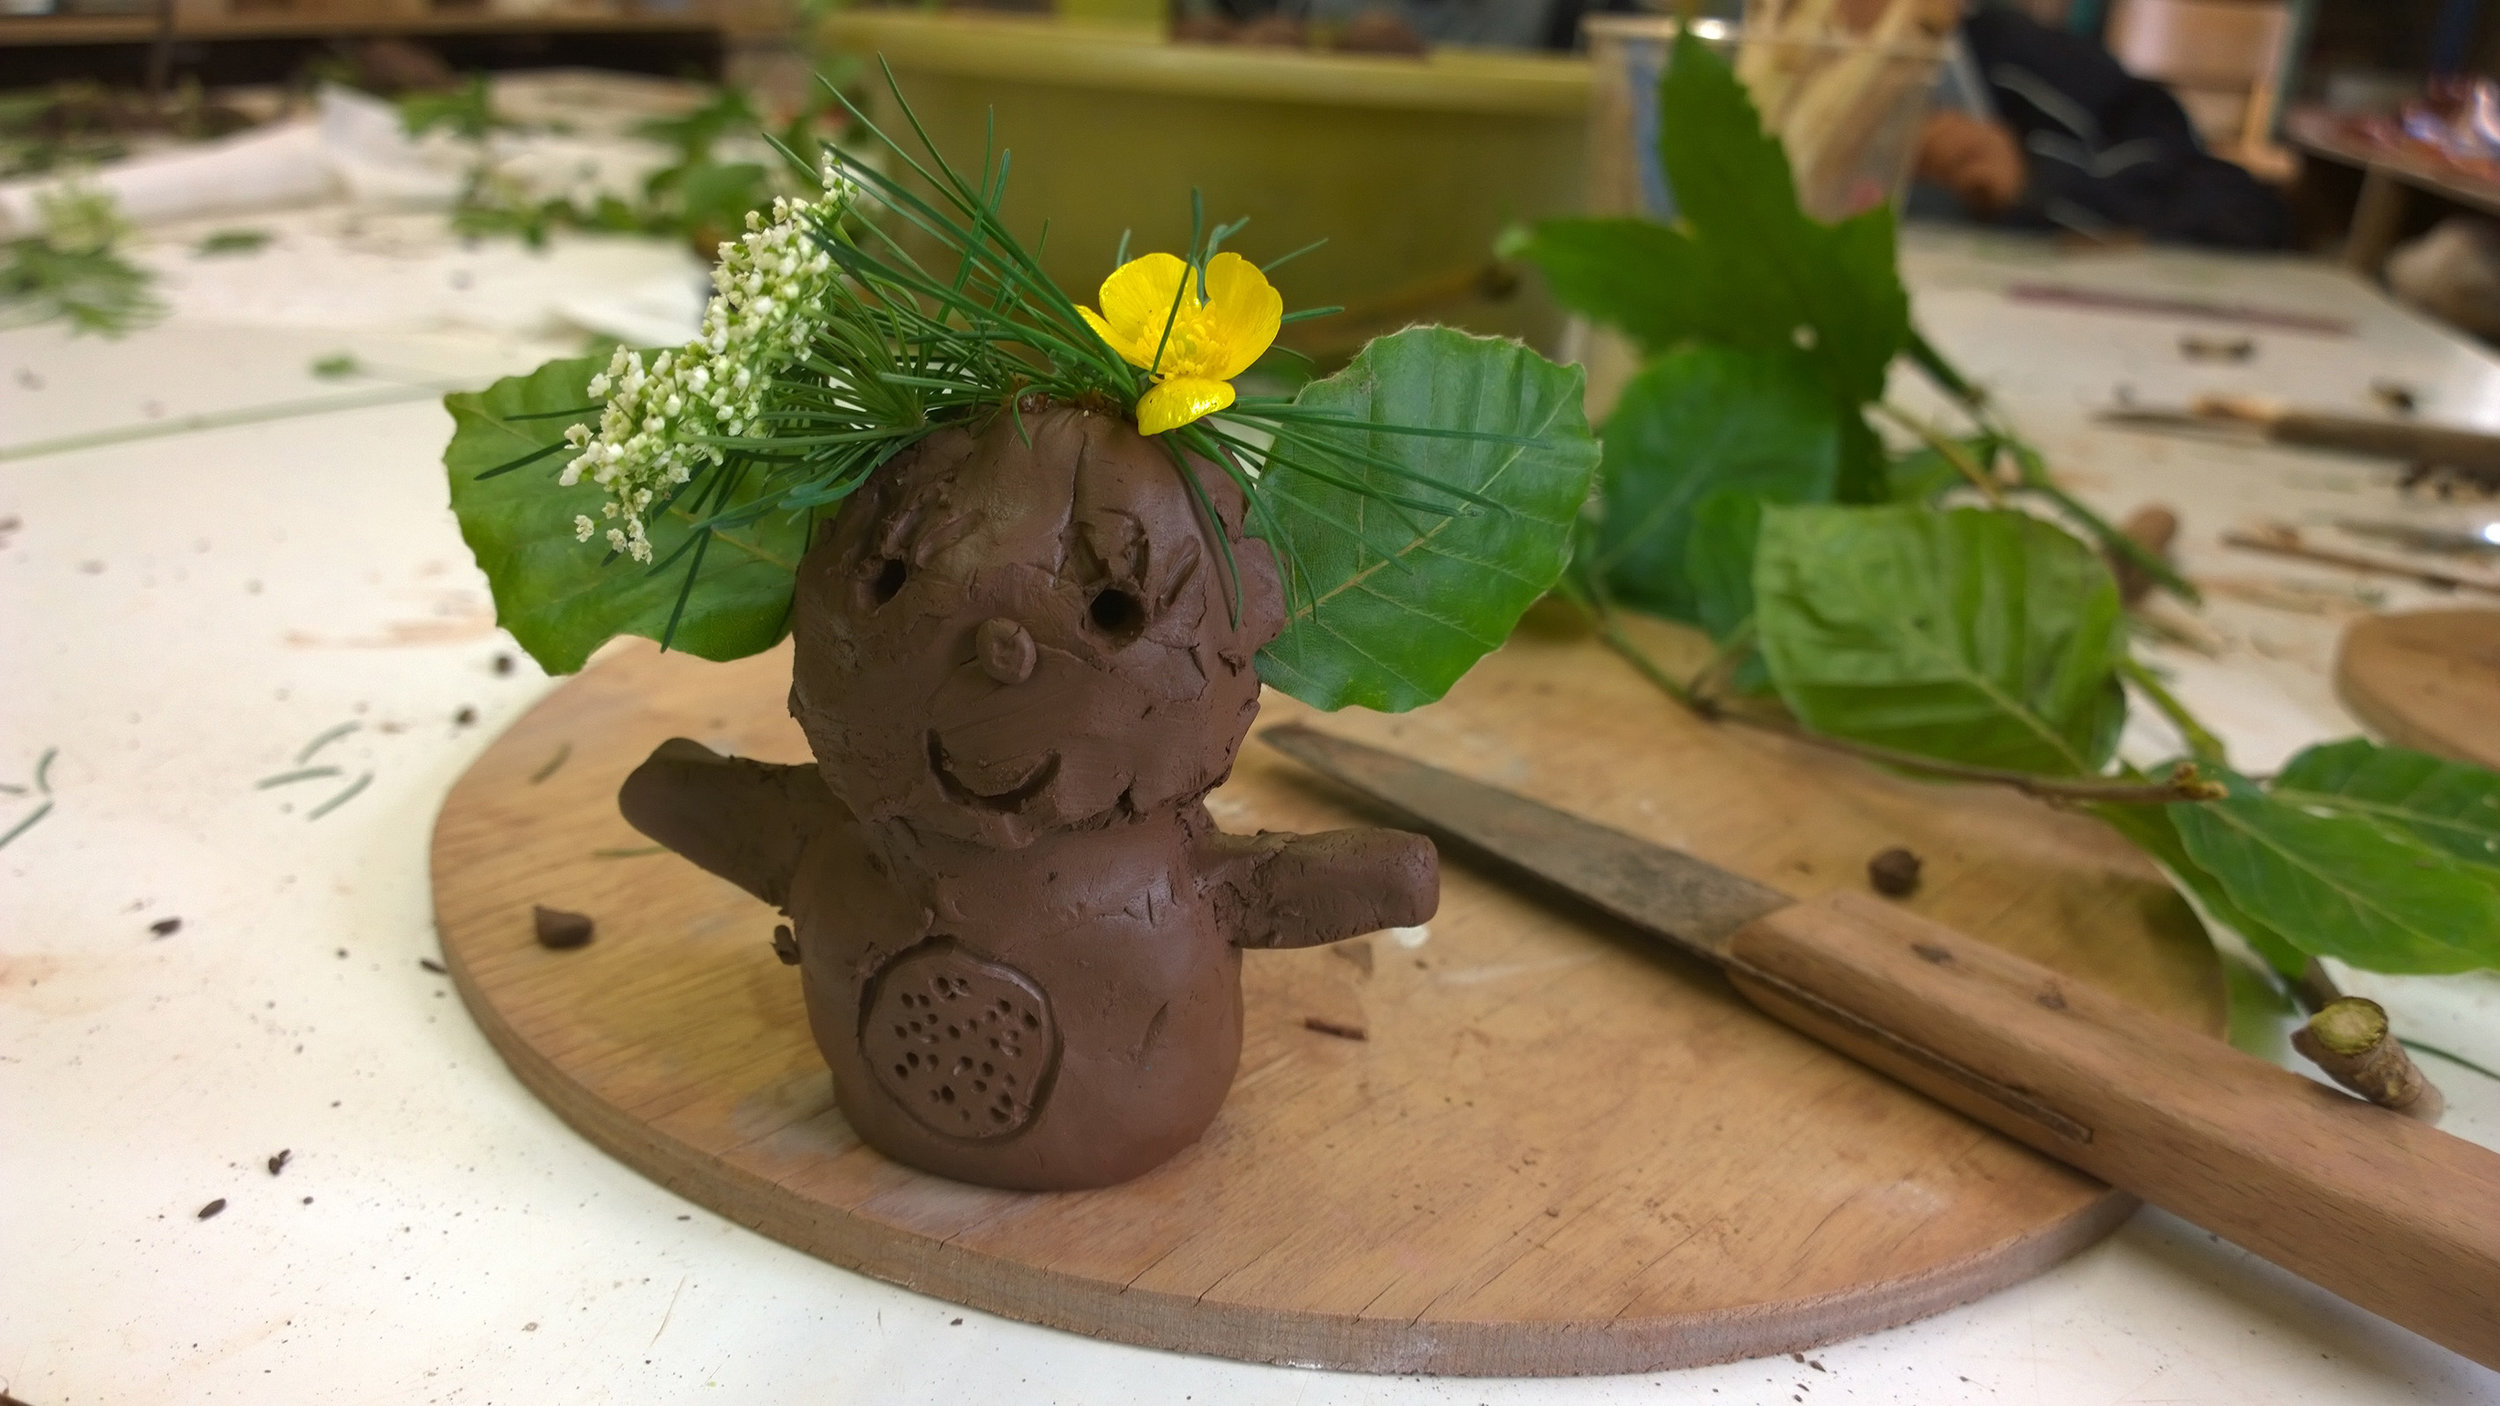 Magical creatures, made from clay and foraged woodland materials.